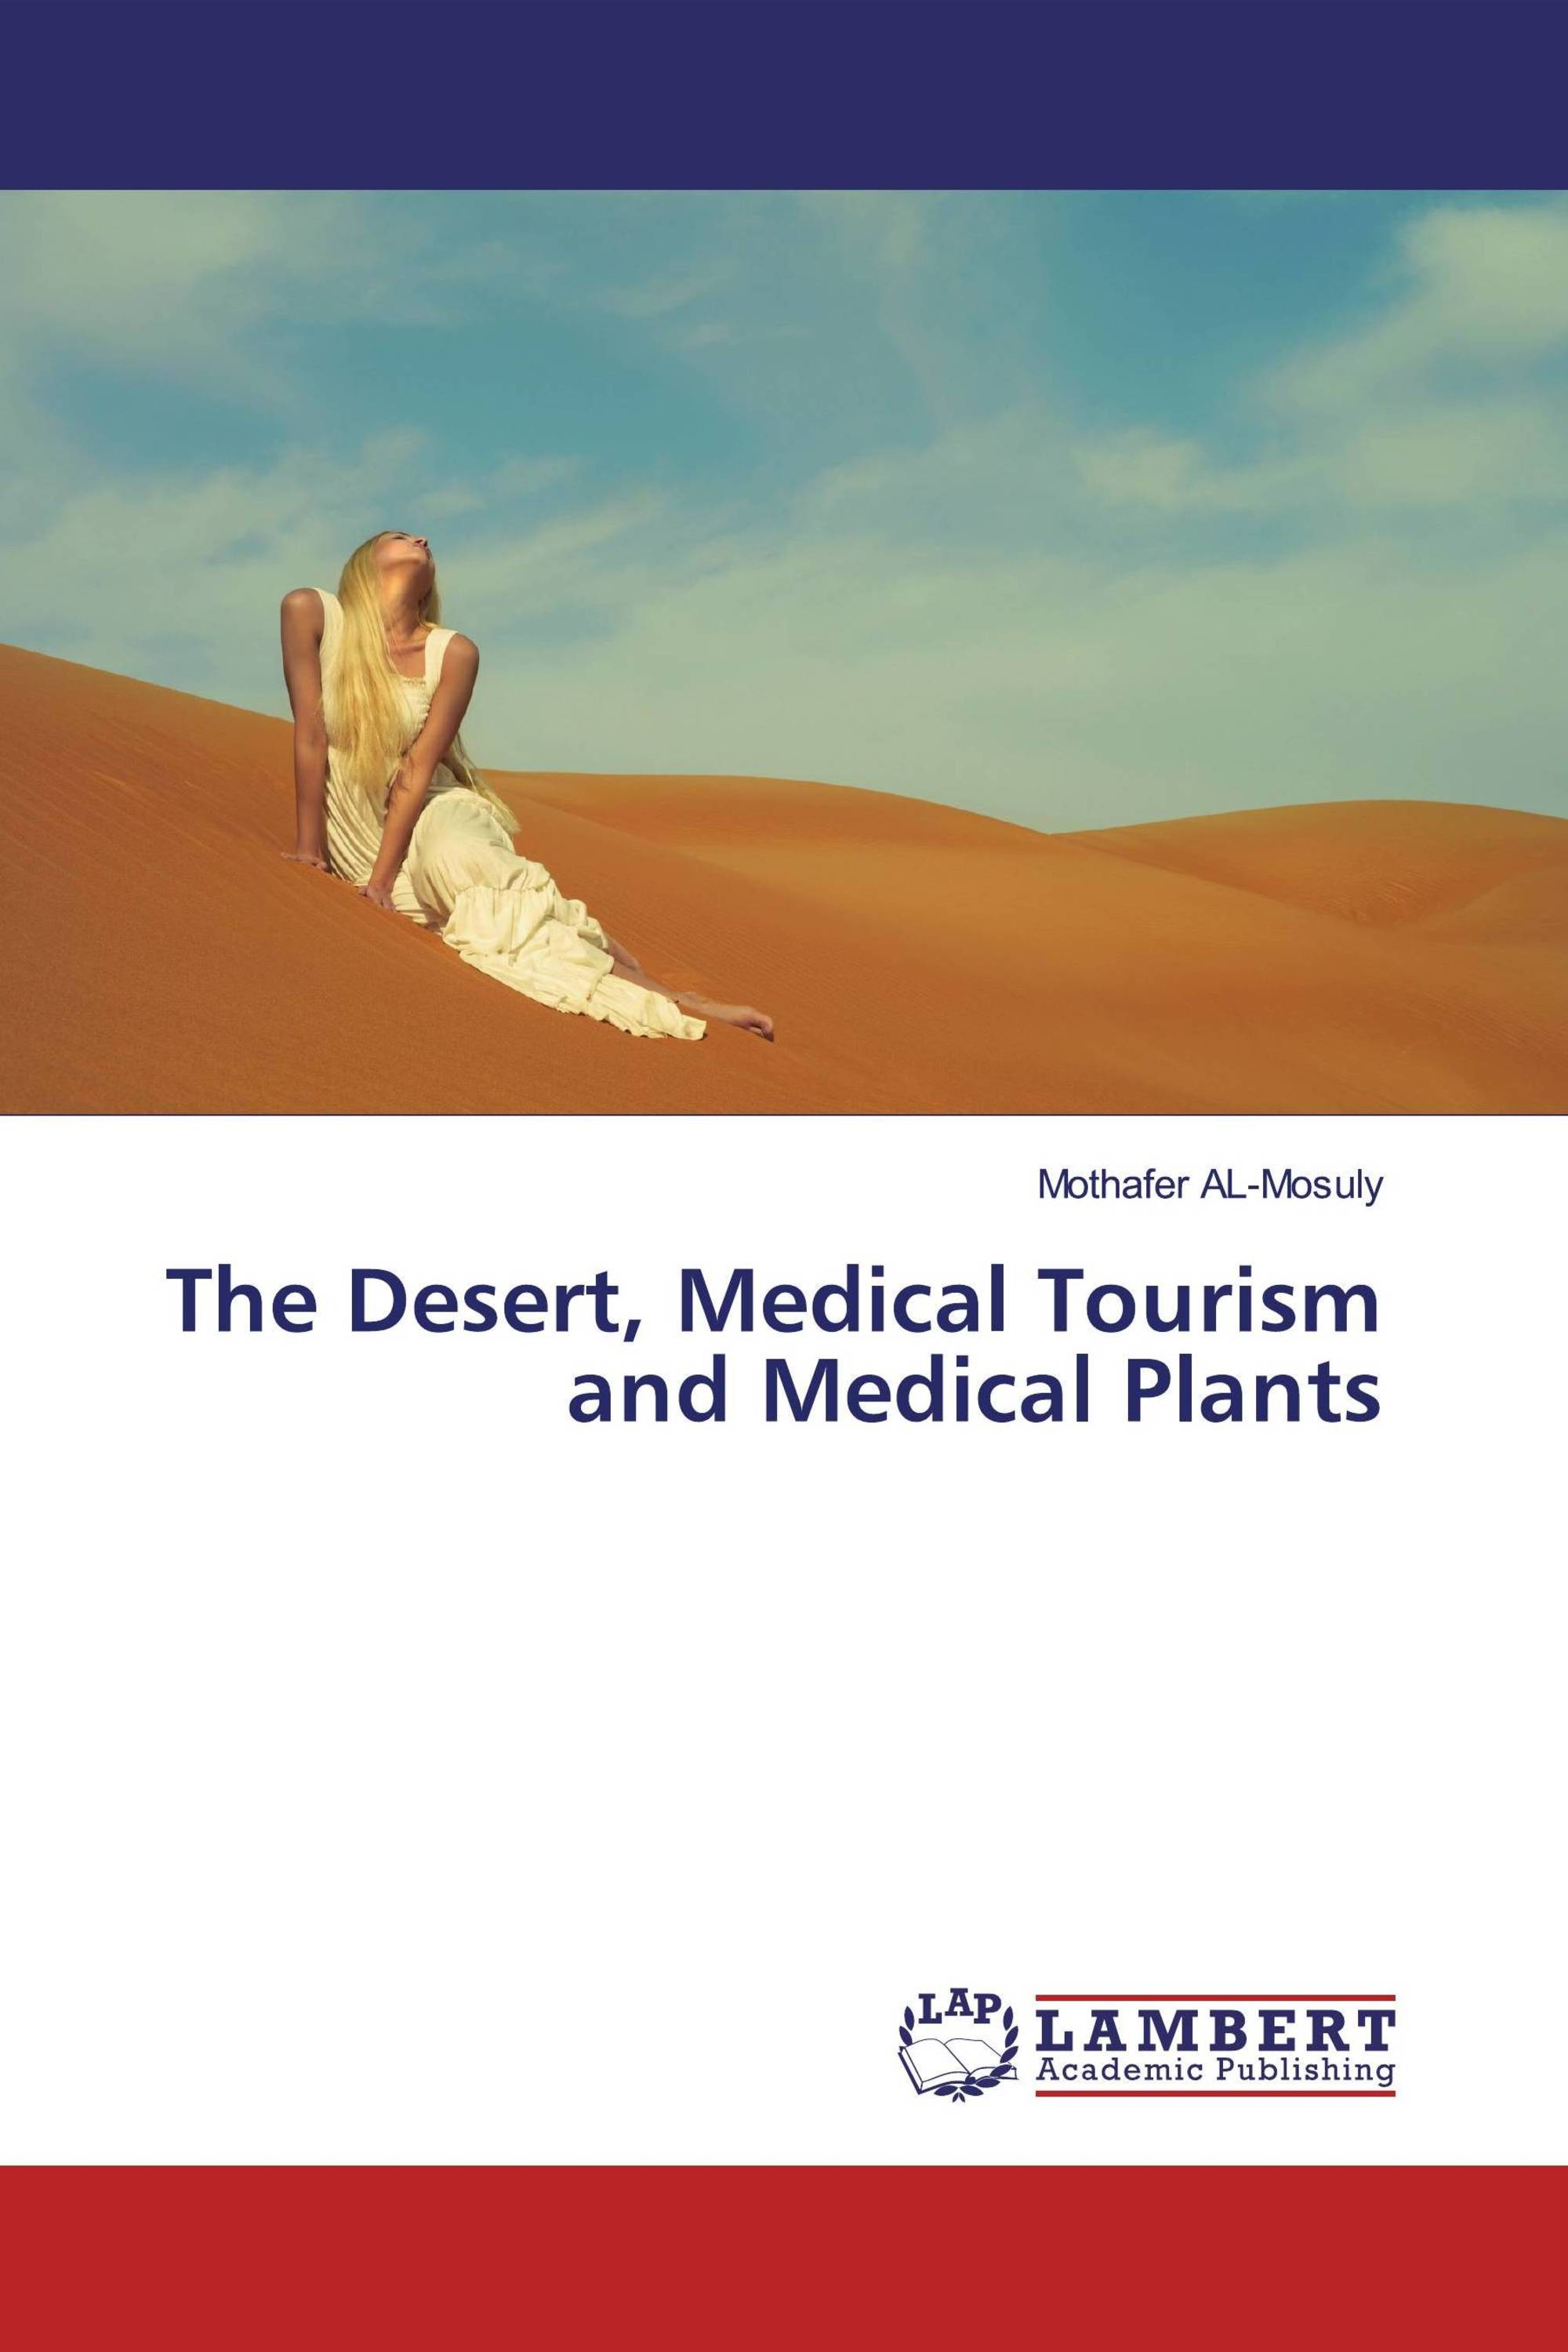 The Desert, Medical Tourism and Medical Plants